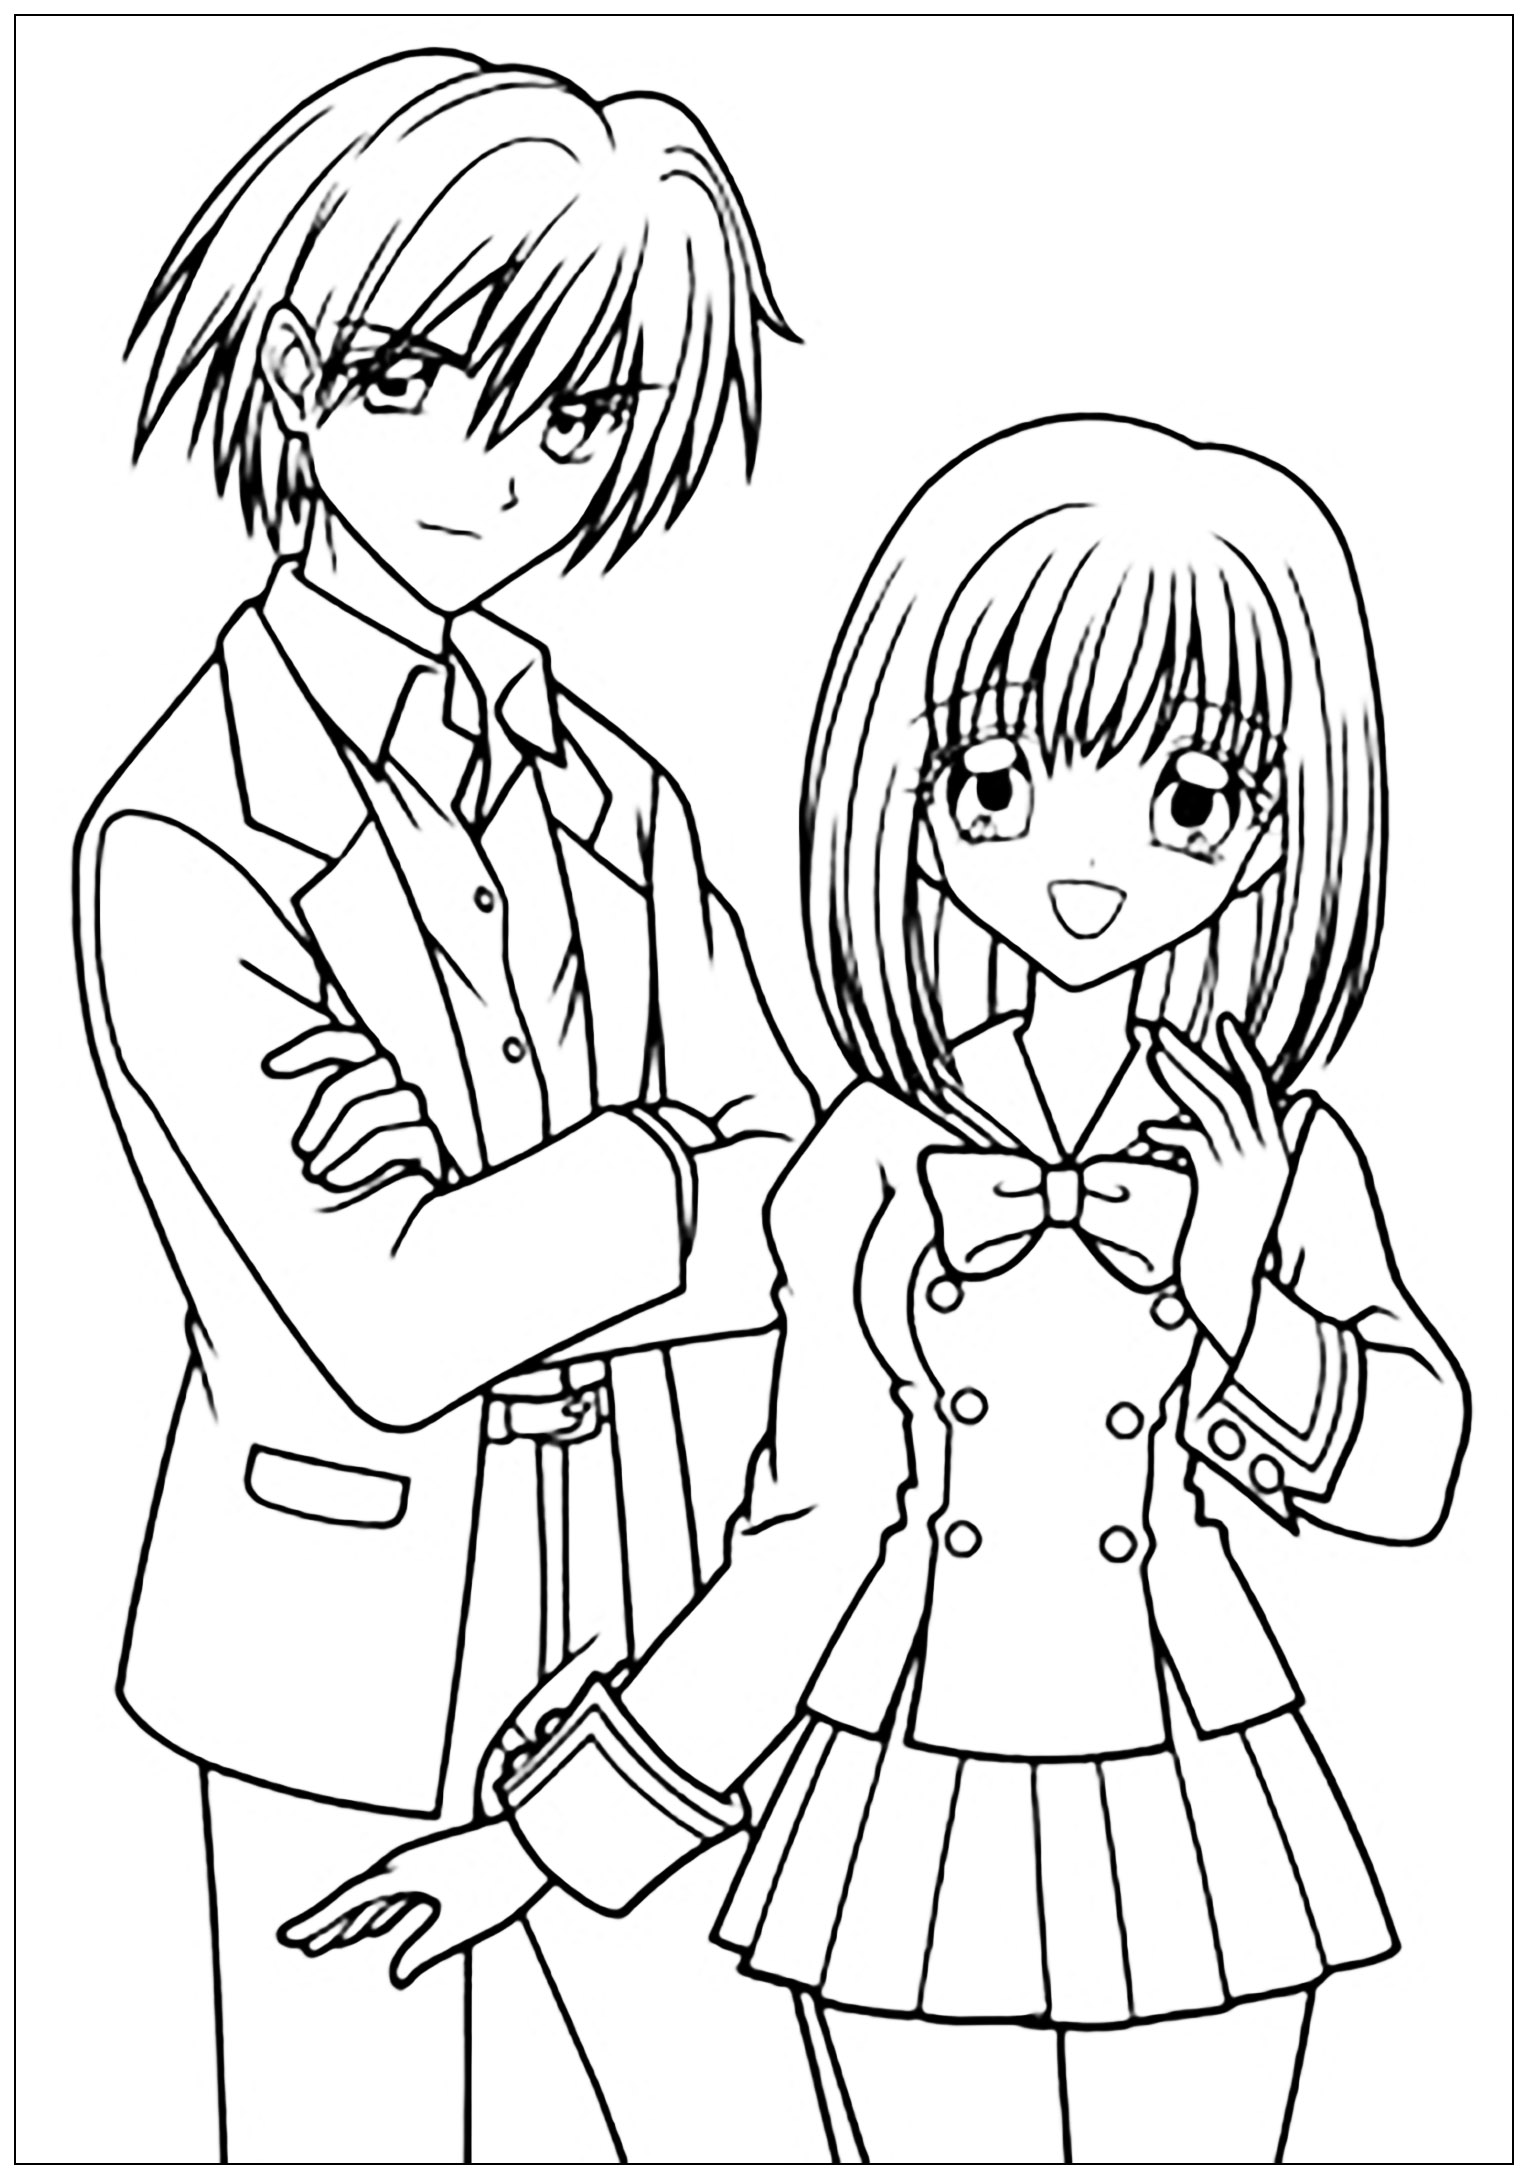 anime coloring sheet manga coloring pages to download and print for free sheet coloring anime